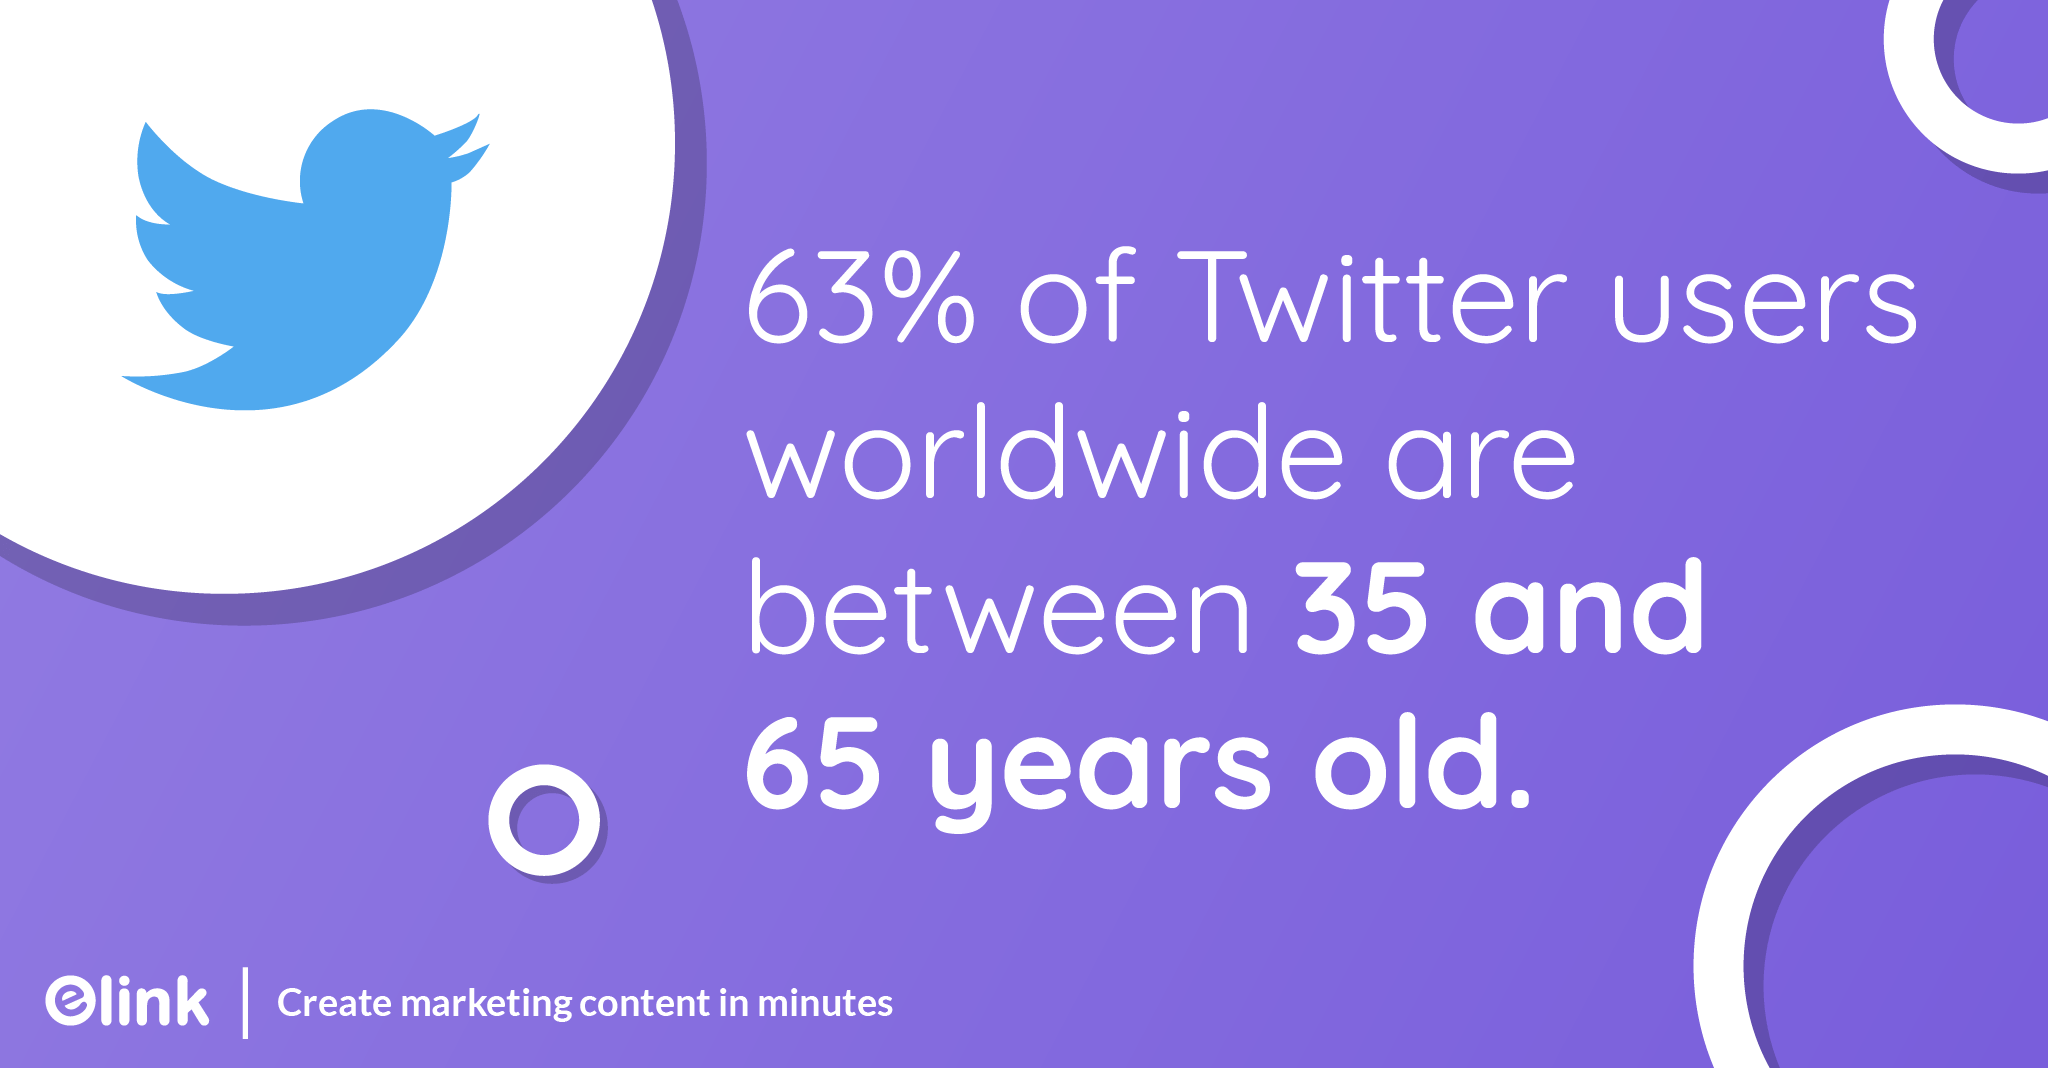 63 percent of Twitter users worldwide are between 35 and 65 years old